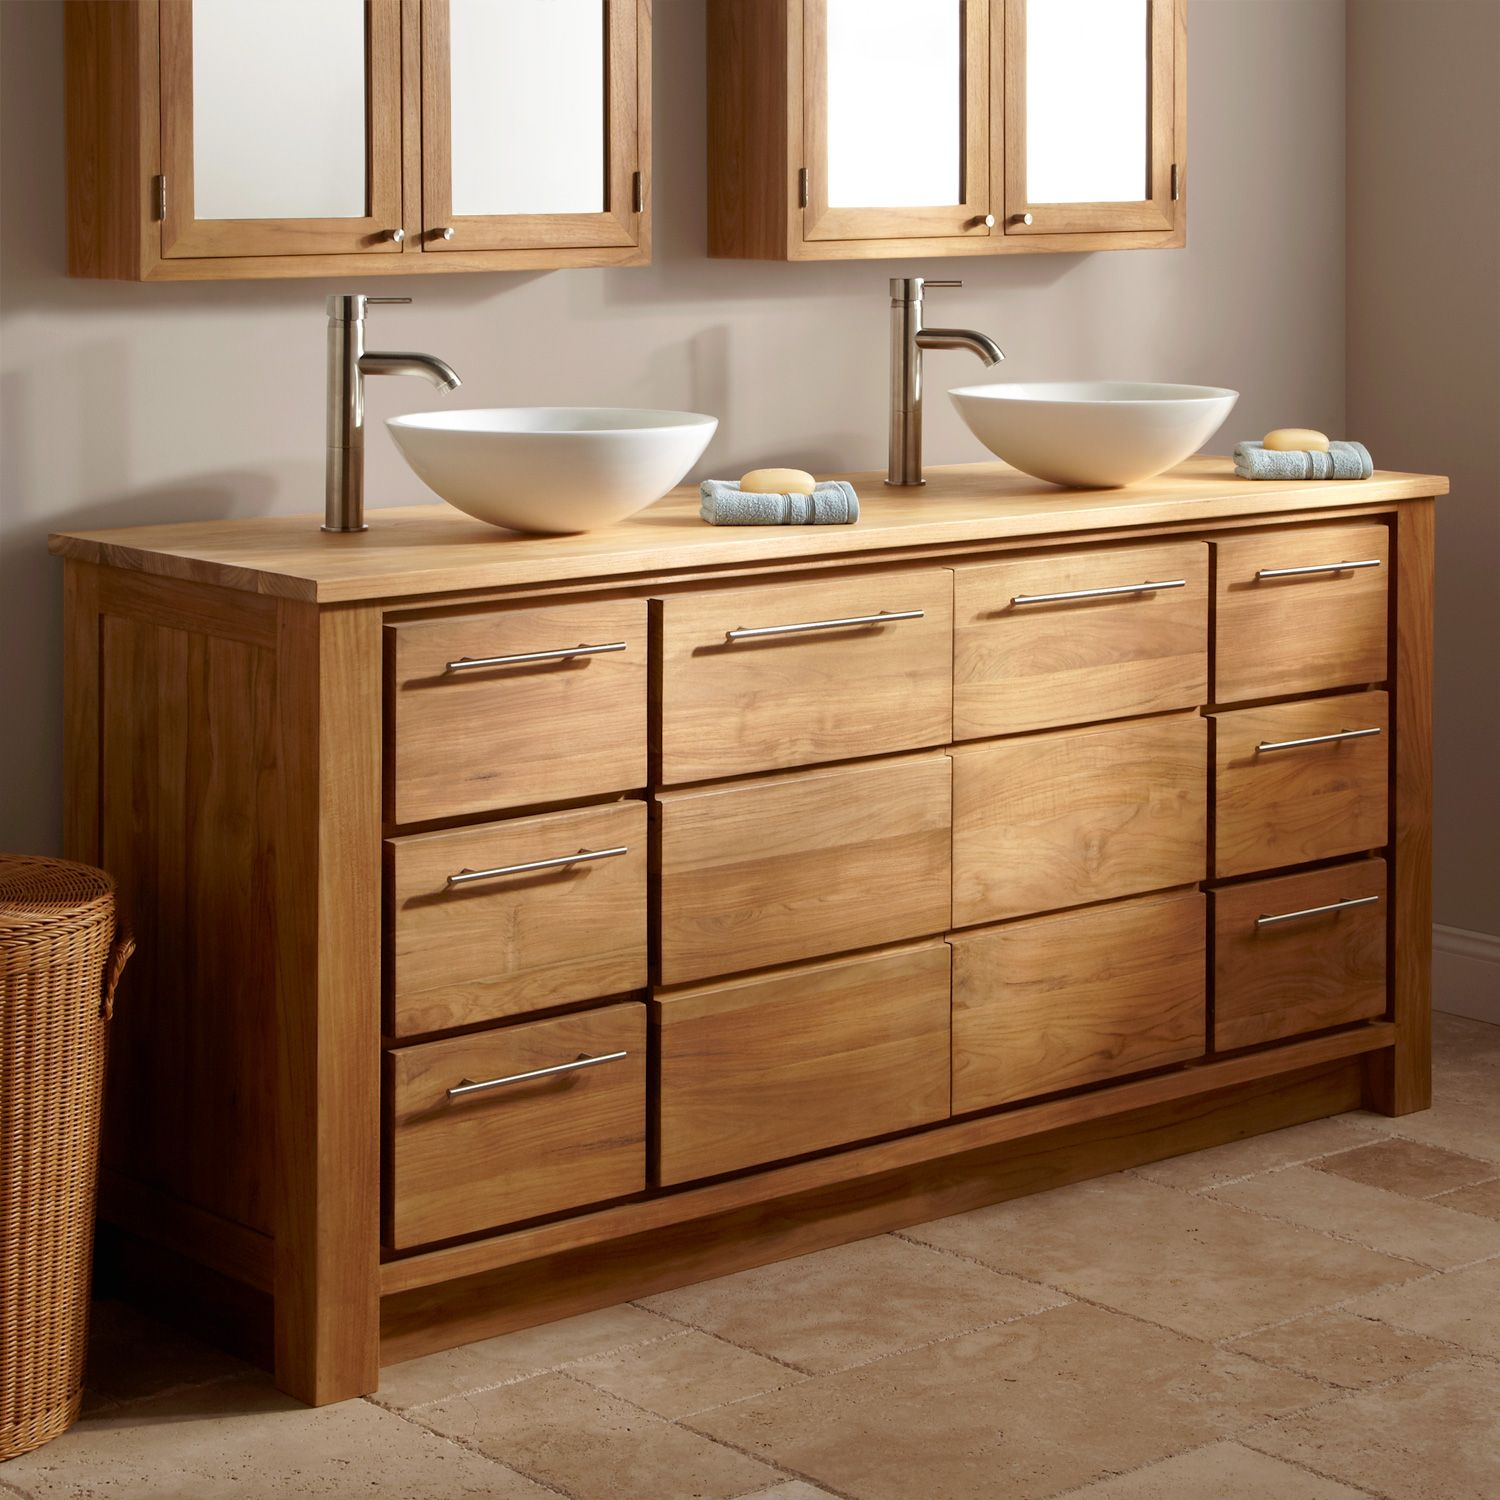 bathroom sink vanity cabinet. 72  Venica Teak Double Vanity Cabinet with Top for Vessel Sinks